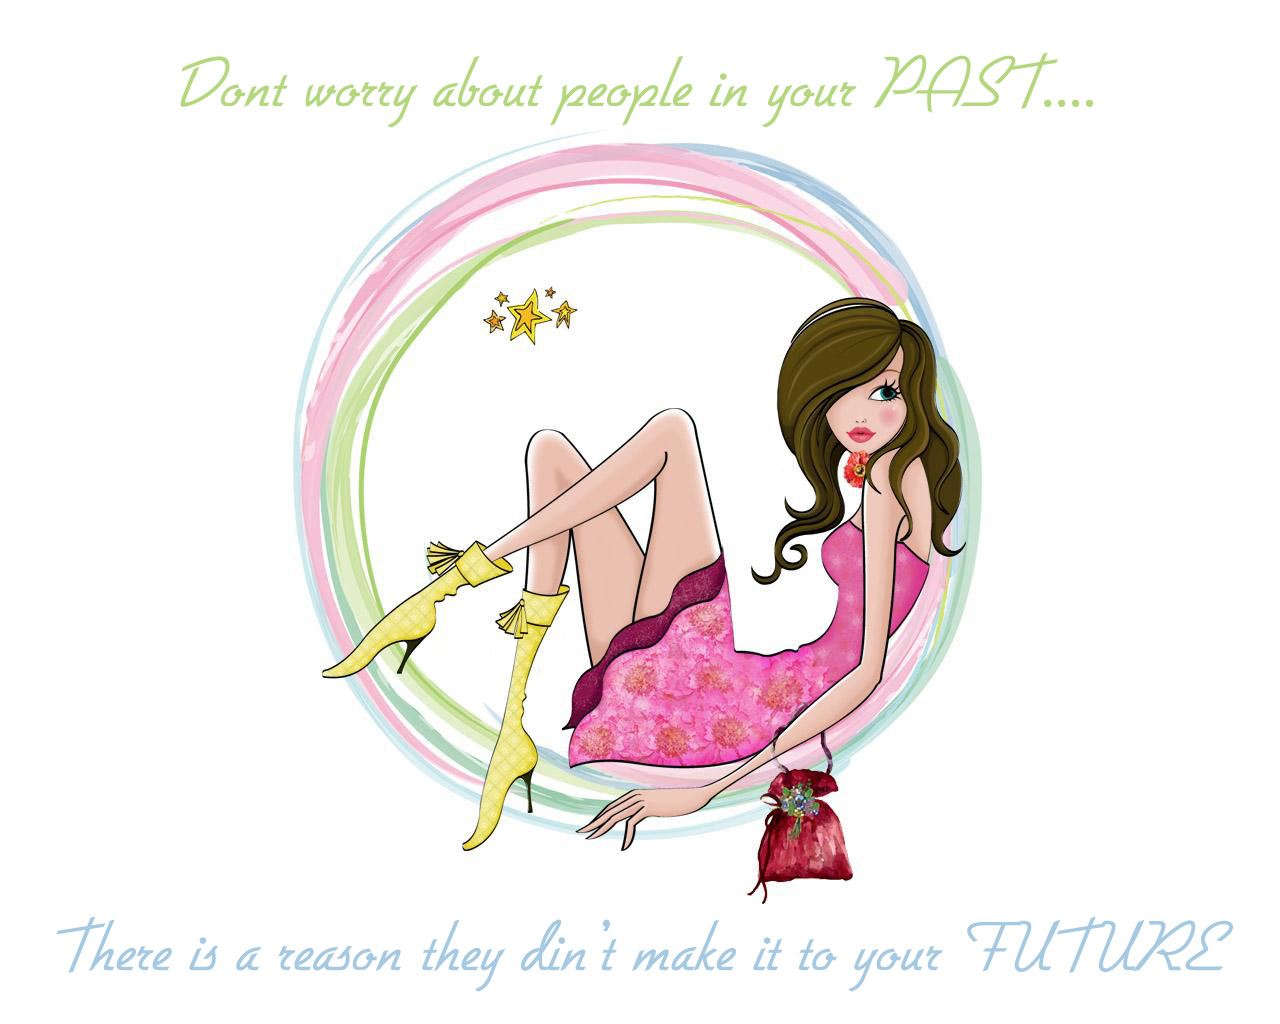 Don't worry about people in your PAST